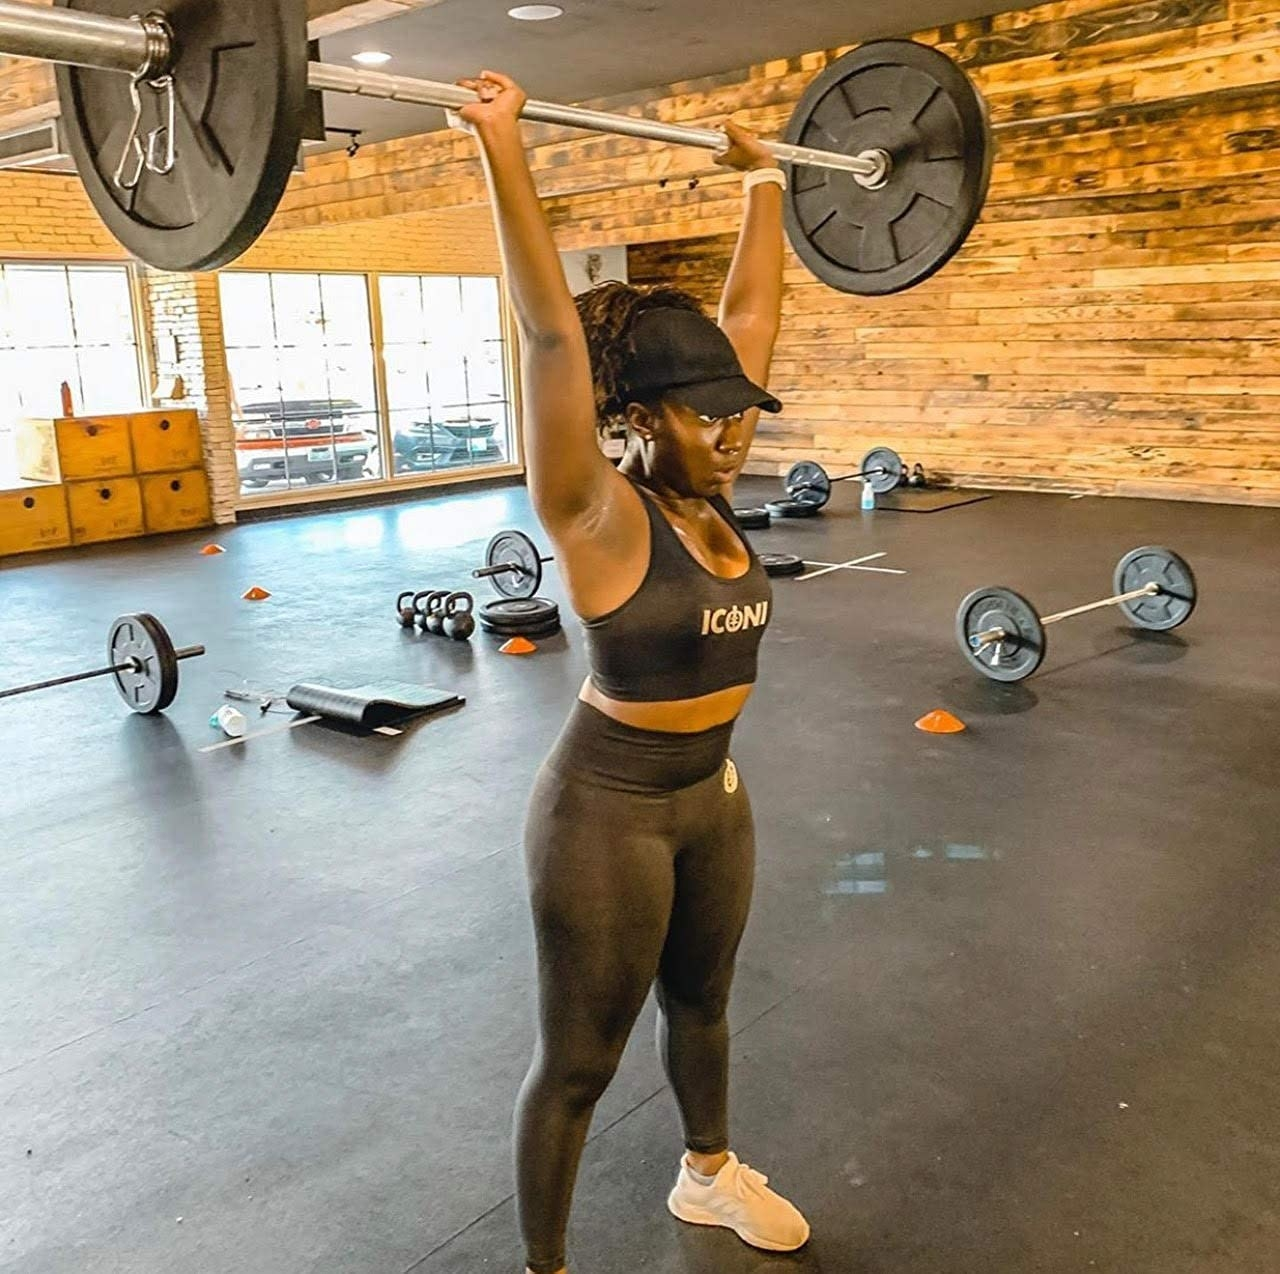 A model in the black leggings lifting a dumbell